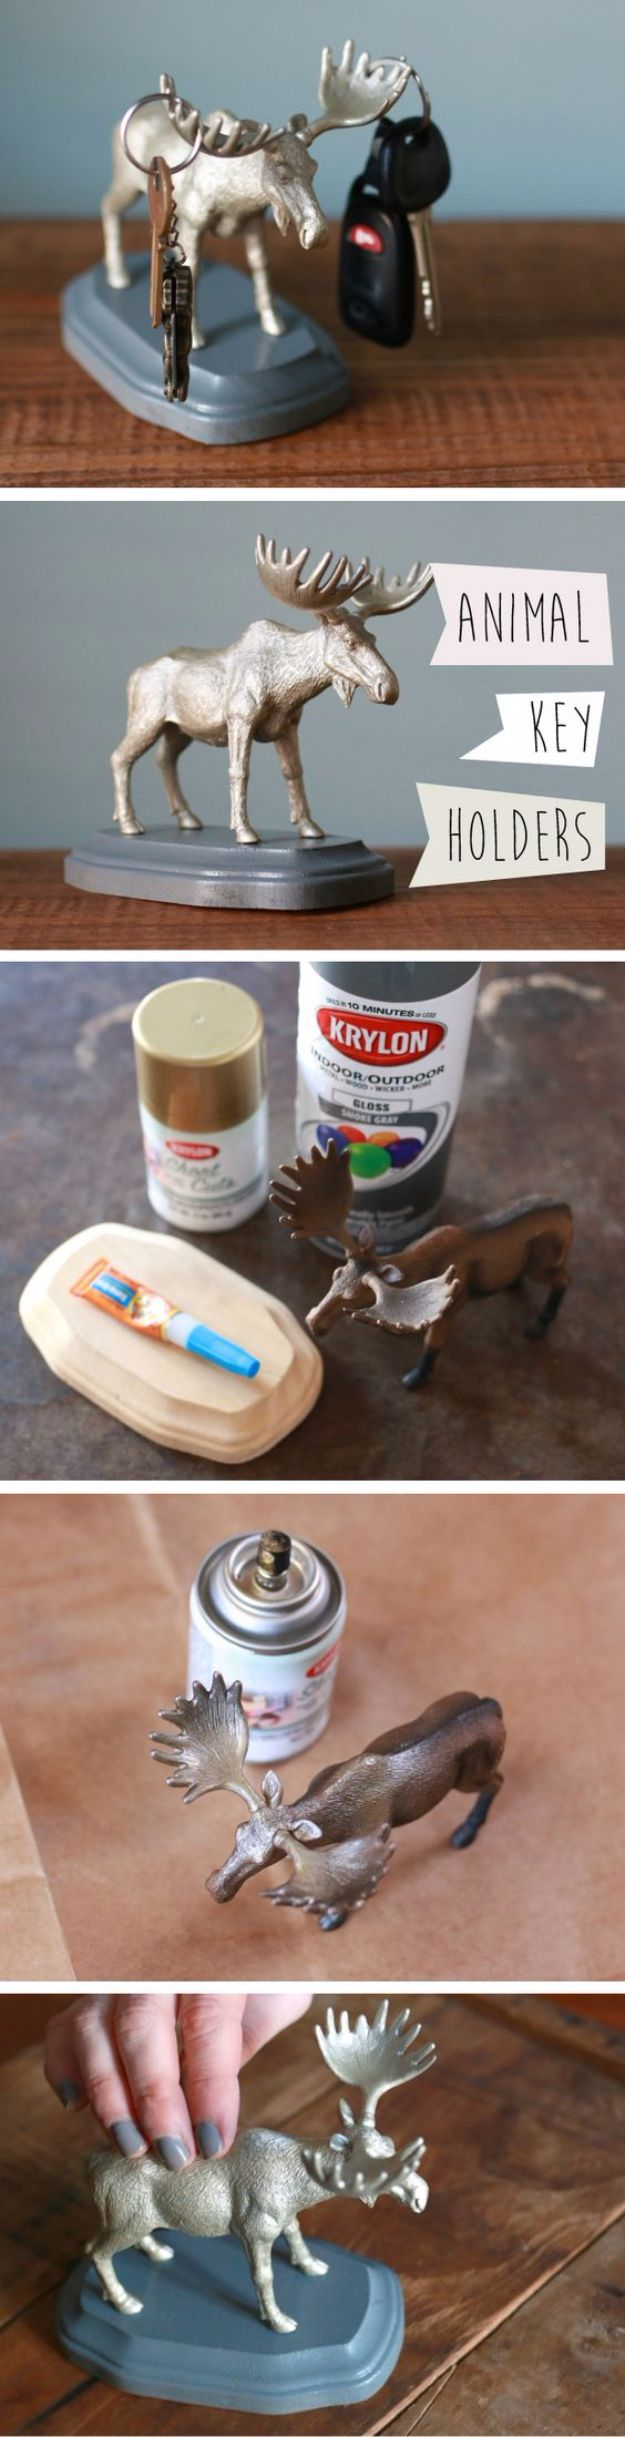 33 Cool DIYs With Spray Paint - DIY Animal Key Holders - Easy Spray Paint Decor, Fun Do It Yourself Spray Paint Ideas, Cool Spray Paint Projects To Try, Upcycled And Repurposed, Restore Old Items With Spray Paint http://diyjoy.com/diy-ideas-spray-paint